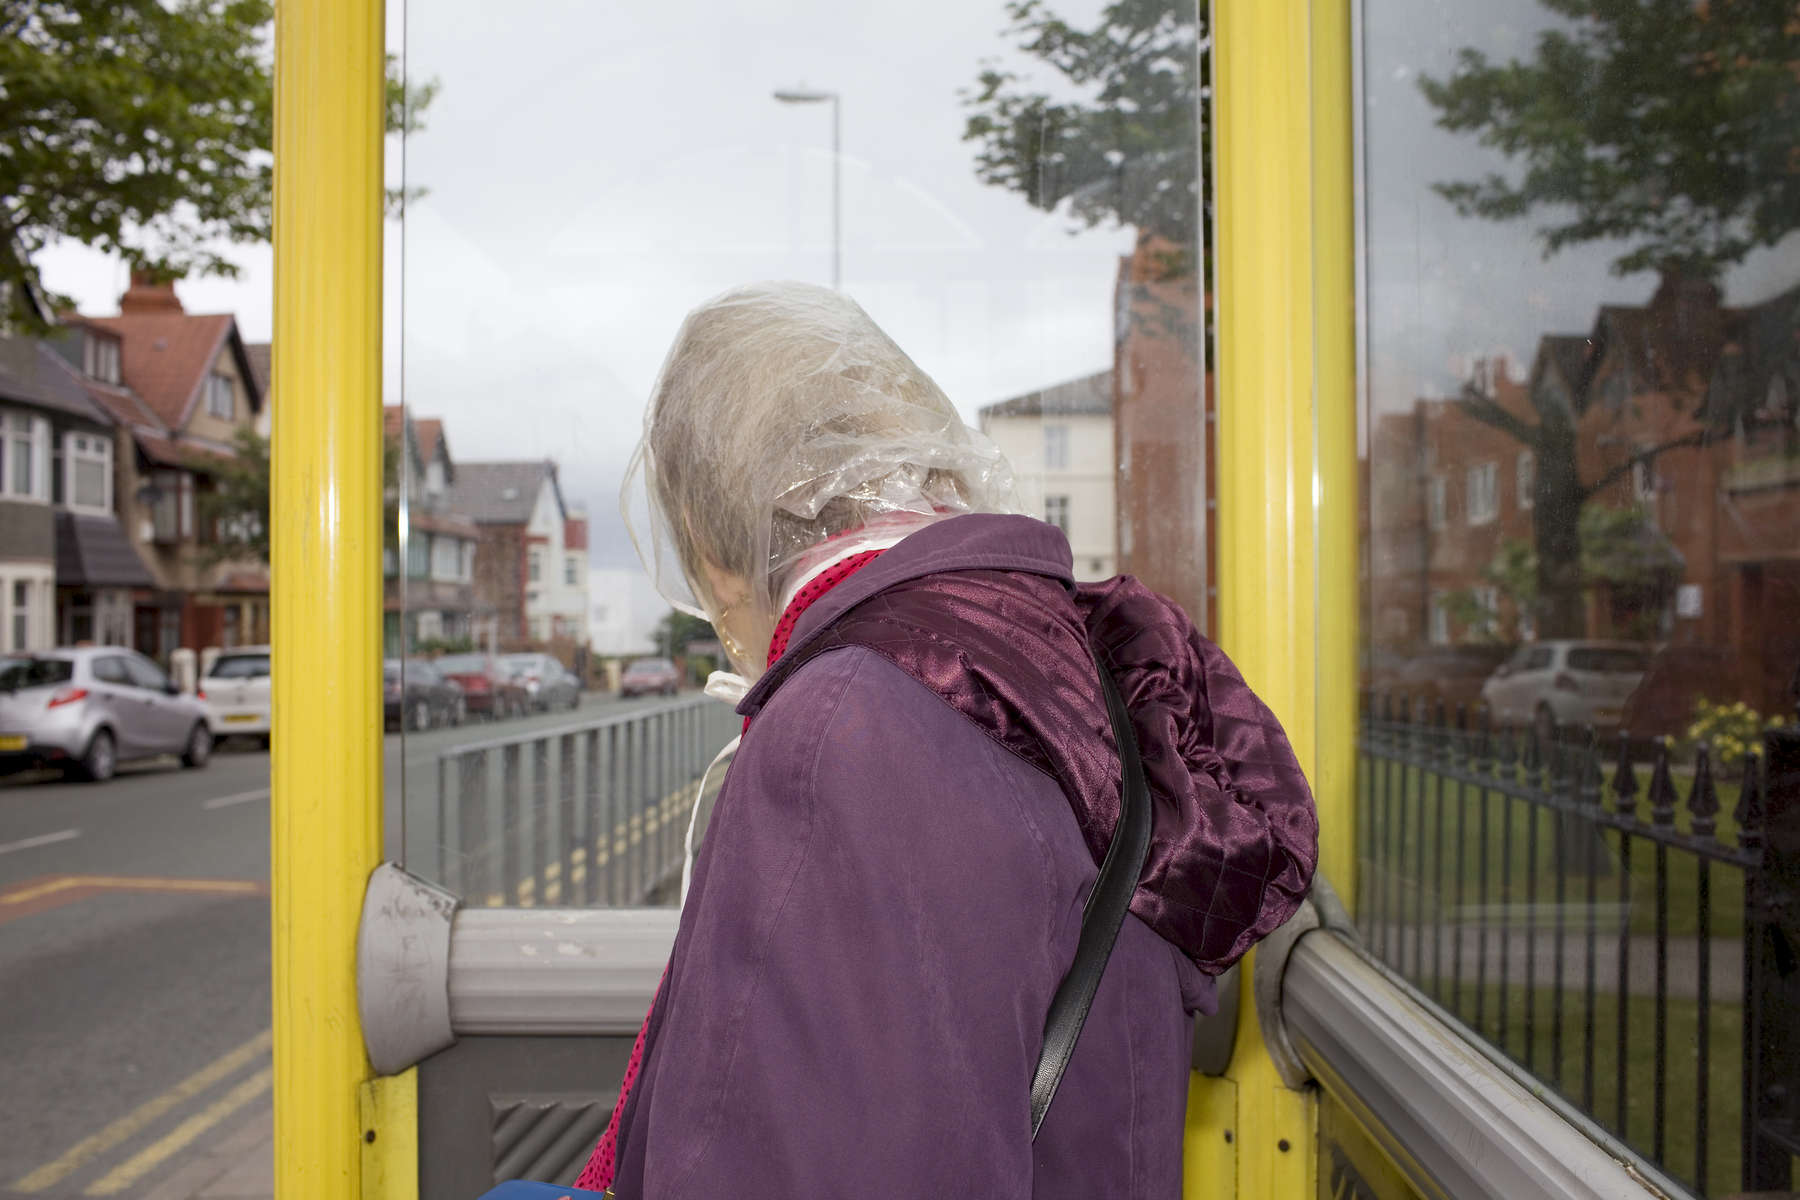 An elderly woman waits at a bus stop on Rowson Street in New Brighton.In 1986, world famous photographer Martin Parr published his book 'The Last Resort,' a set of photographs taken over three seasons 1983-85 in the Liverpool suburb of New Brighton. 25 years later, photographer and Parr fan, Peter Dench, went on a Bank Holiday pilgrimage to New Brighton to walk in Parr's footsteps and document what has changed or remained the same in the seaside town.